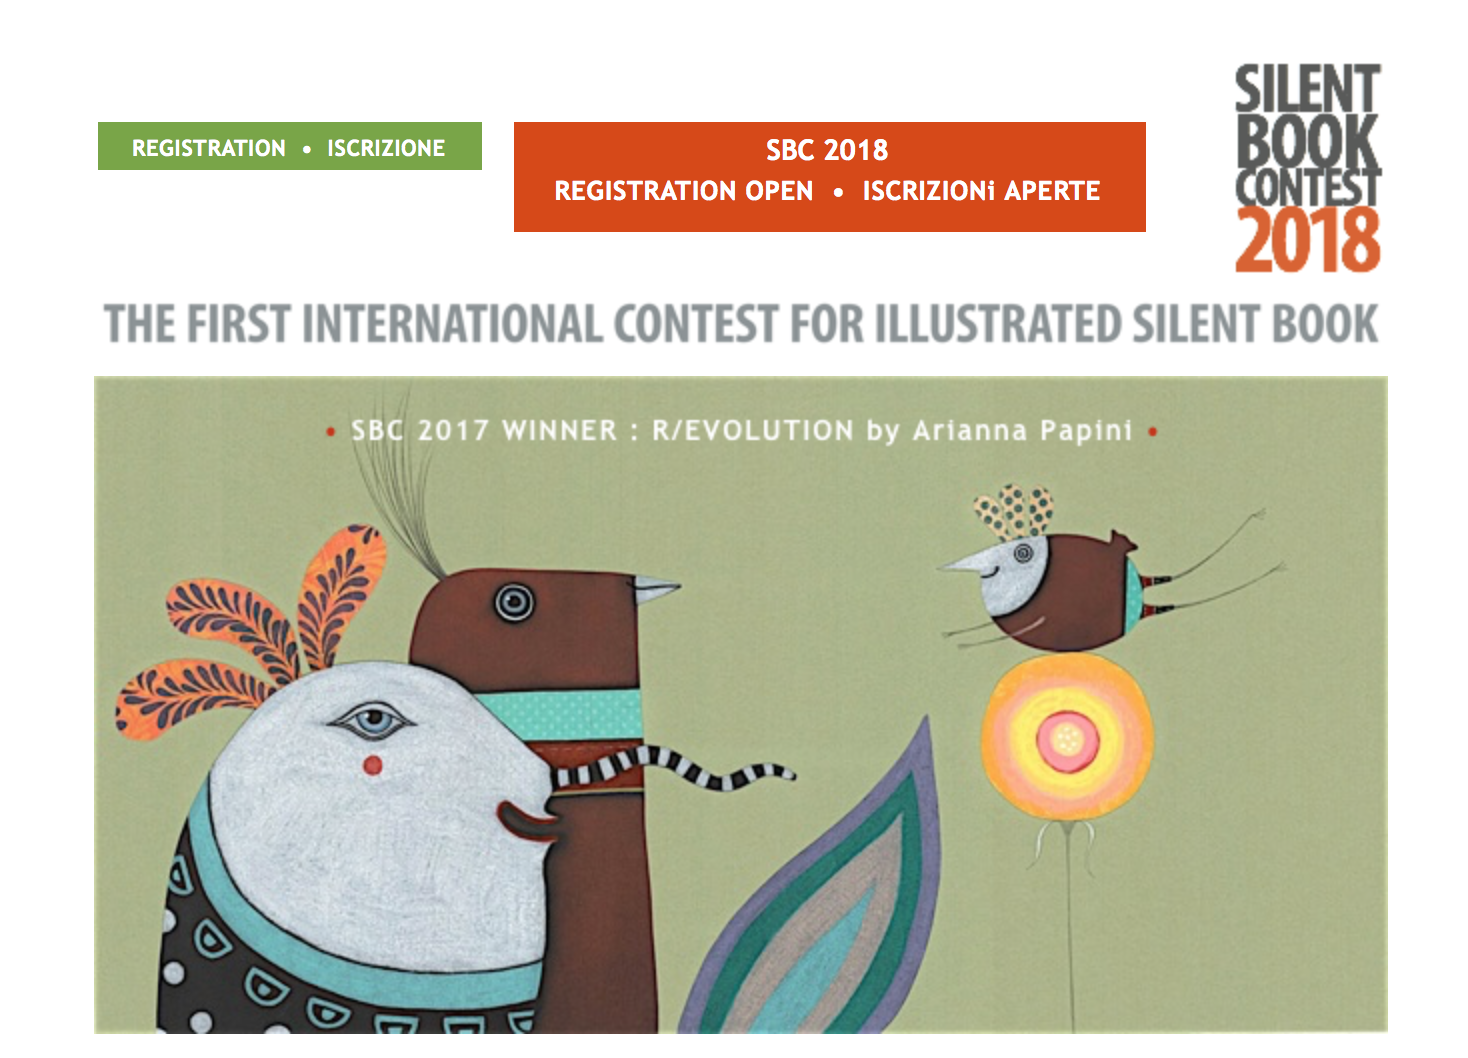 The SILENT BOOK CONTEST 2018